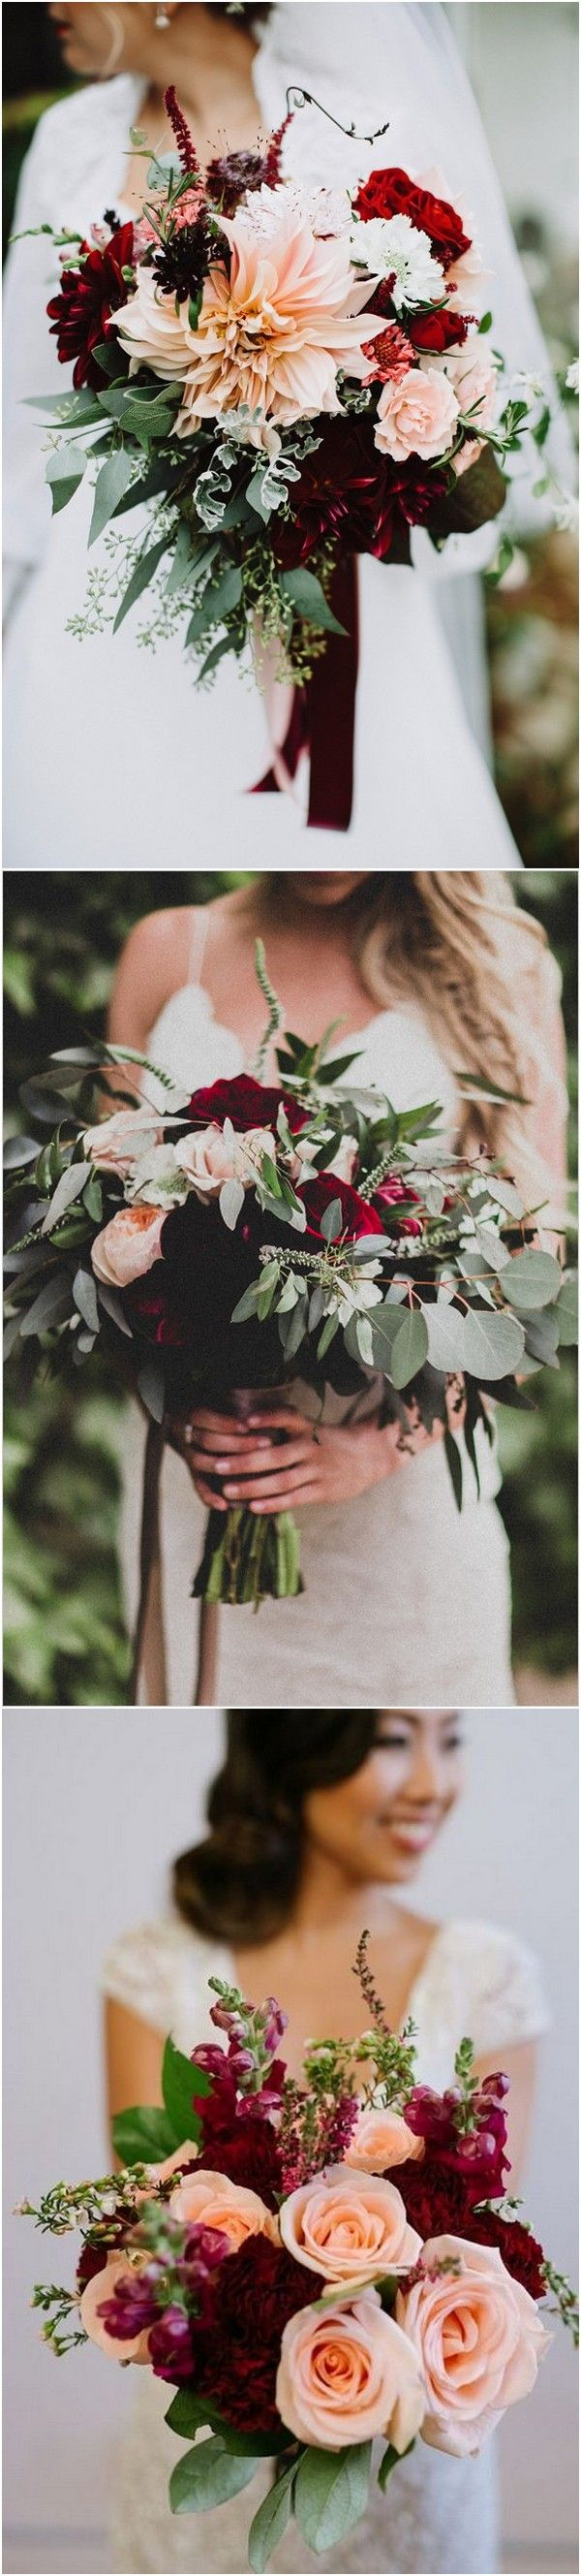 burgundy and blush wedding bouquet ideas